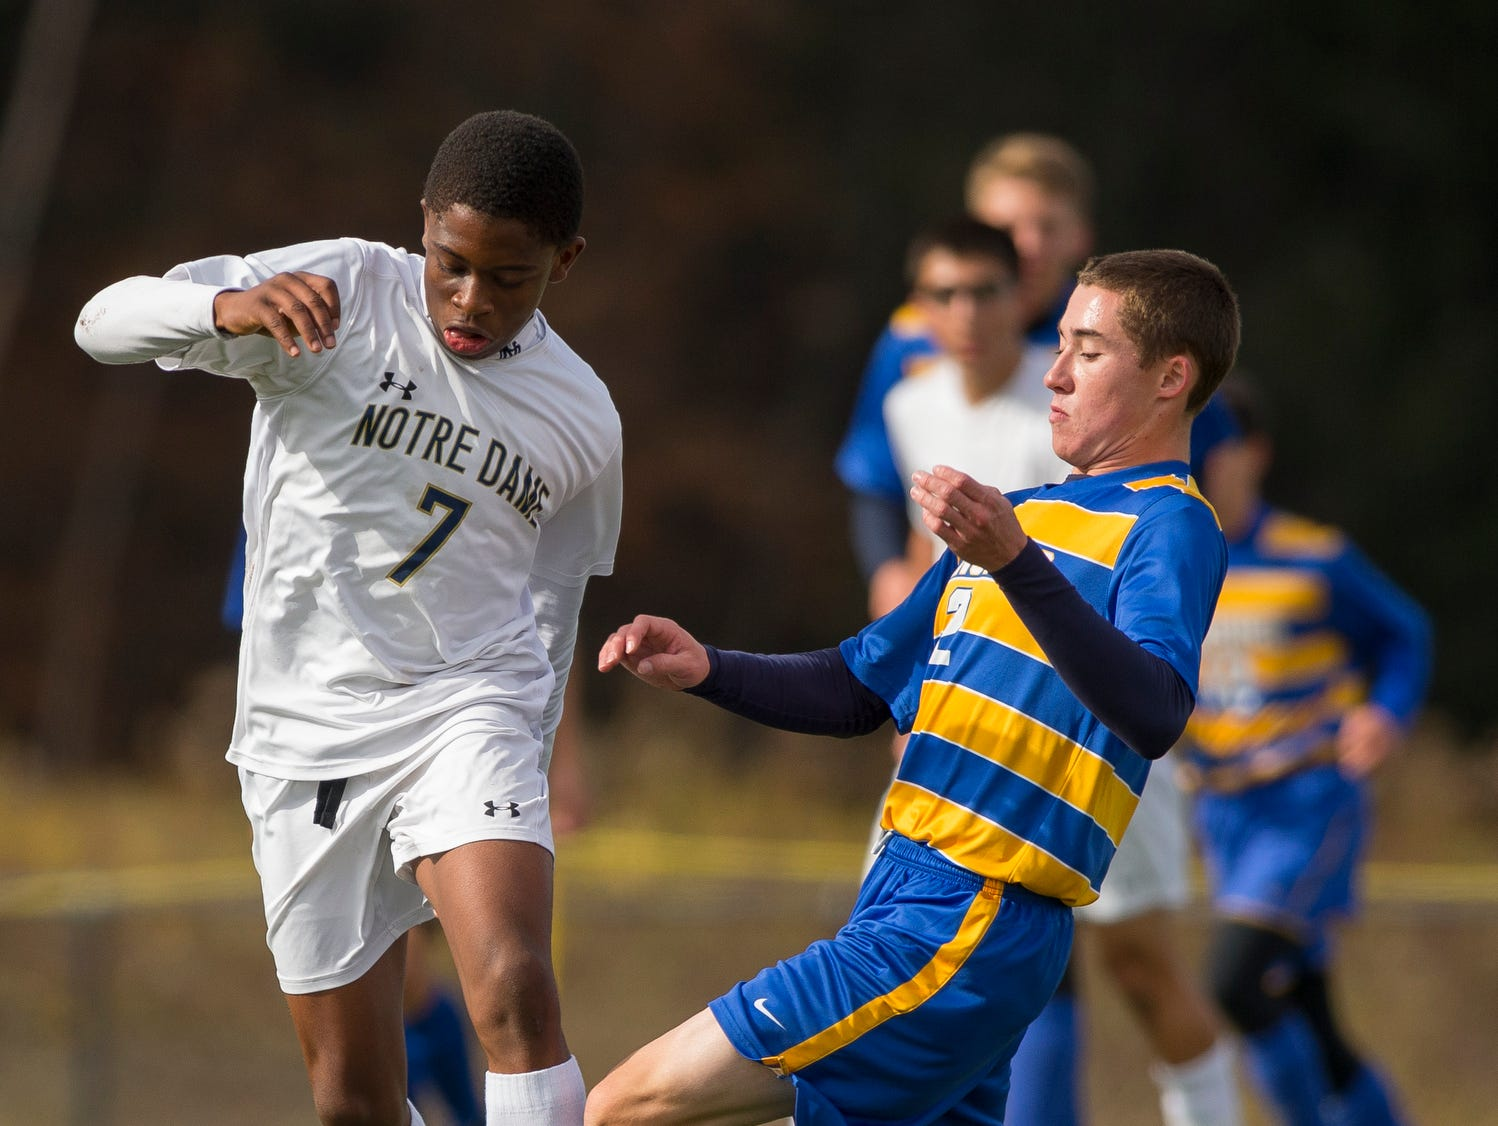 Notre Dame's Rocco Coulibaly, works the ball around Lansing's Ben Kutler Saturday afternoon during Notre Dame's win in the Section IV Class C soccer tournament.7 and 2